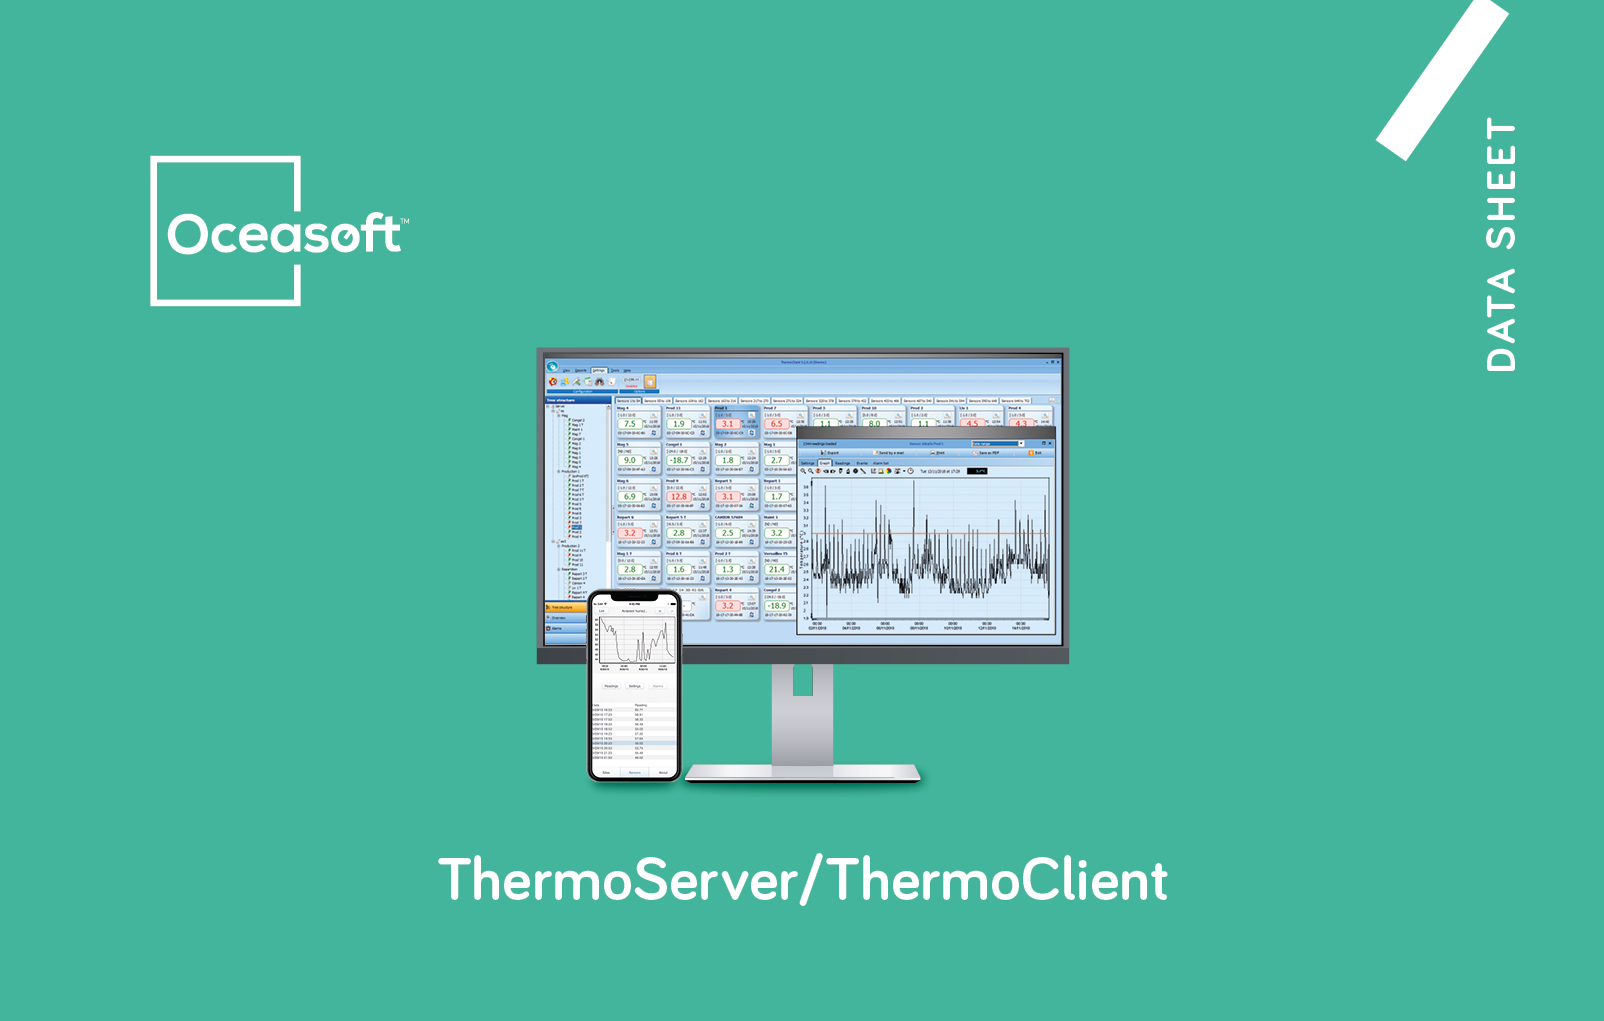 Download the ThermoServer/ThermoClient datasheet